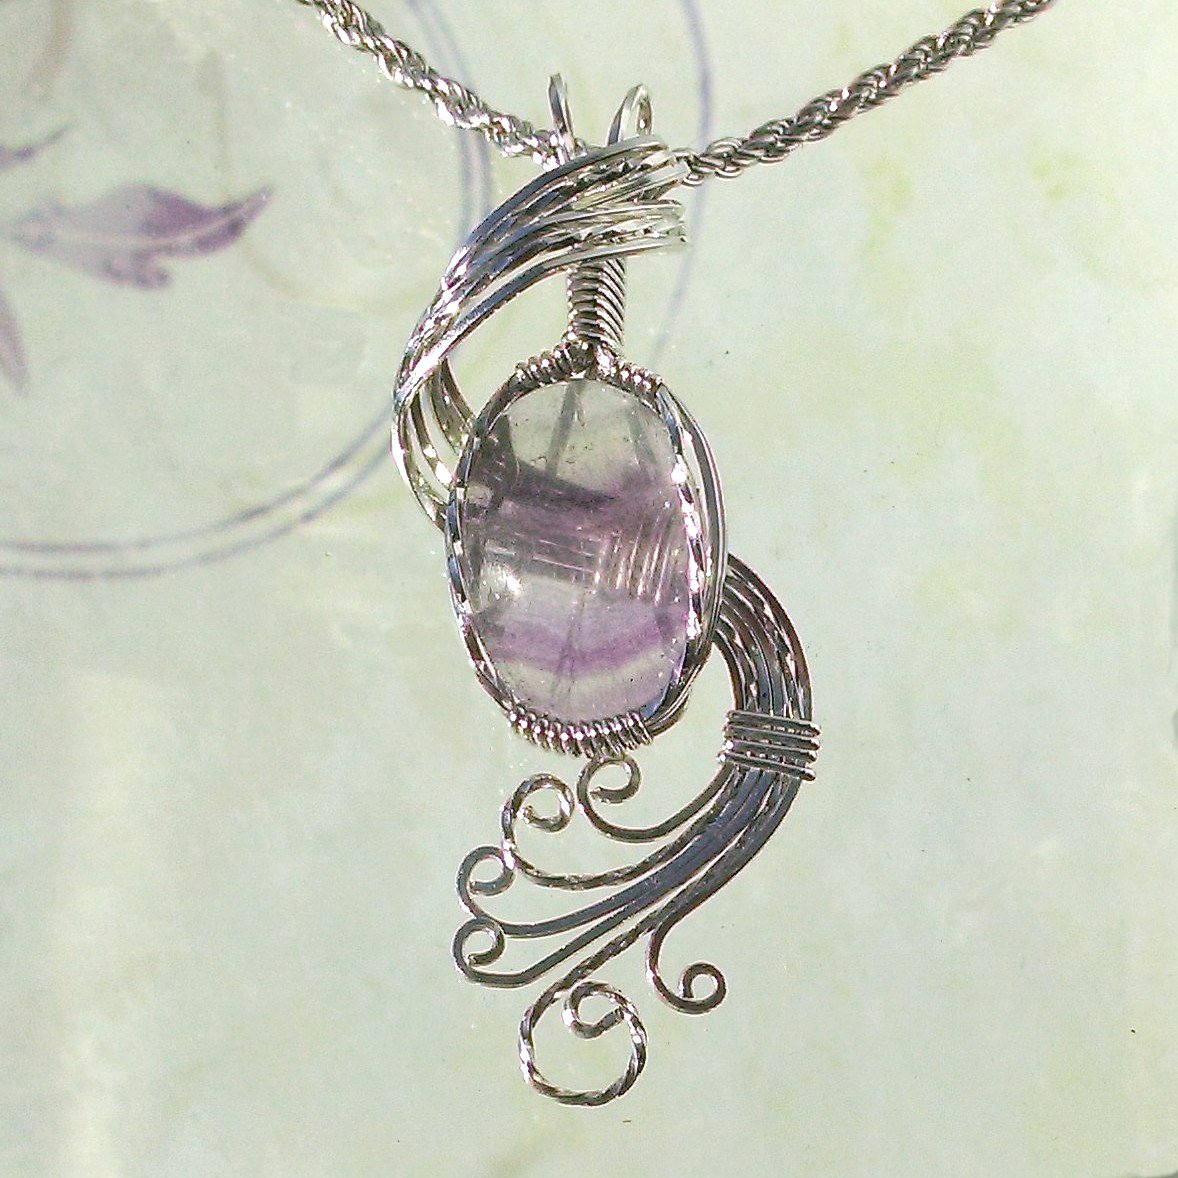 Purple Fluorite Pendant Necklace Wire Wrapped Jewelry Handmade in S… https://t.co/xzPD1eqhYL #hippiechic #craftshout https://t.co/iq0UHdj3Fd